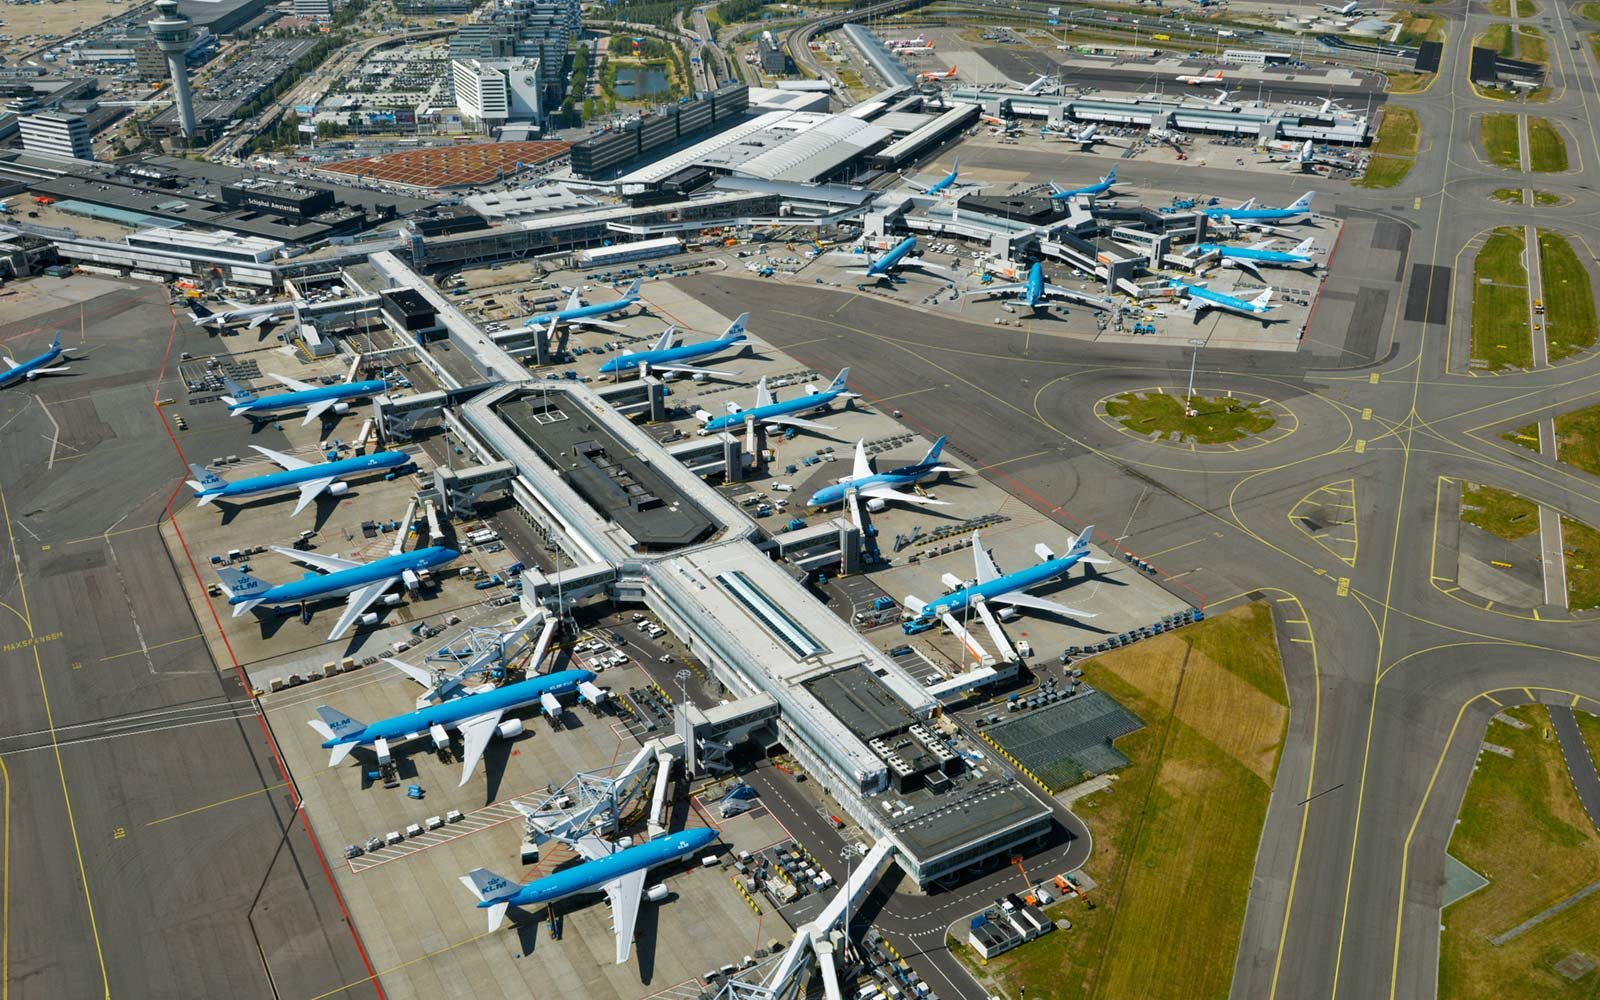 Amsterdam Airport Schiphol, The Netherlands